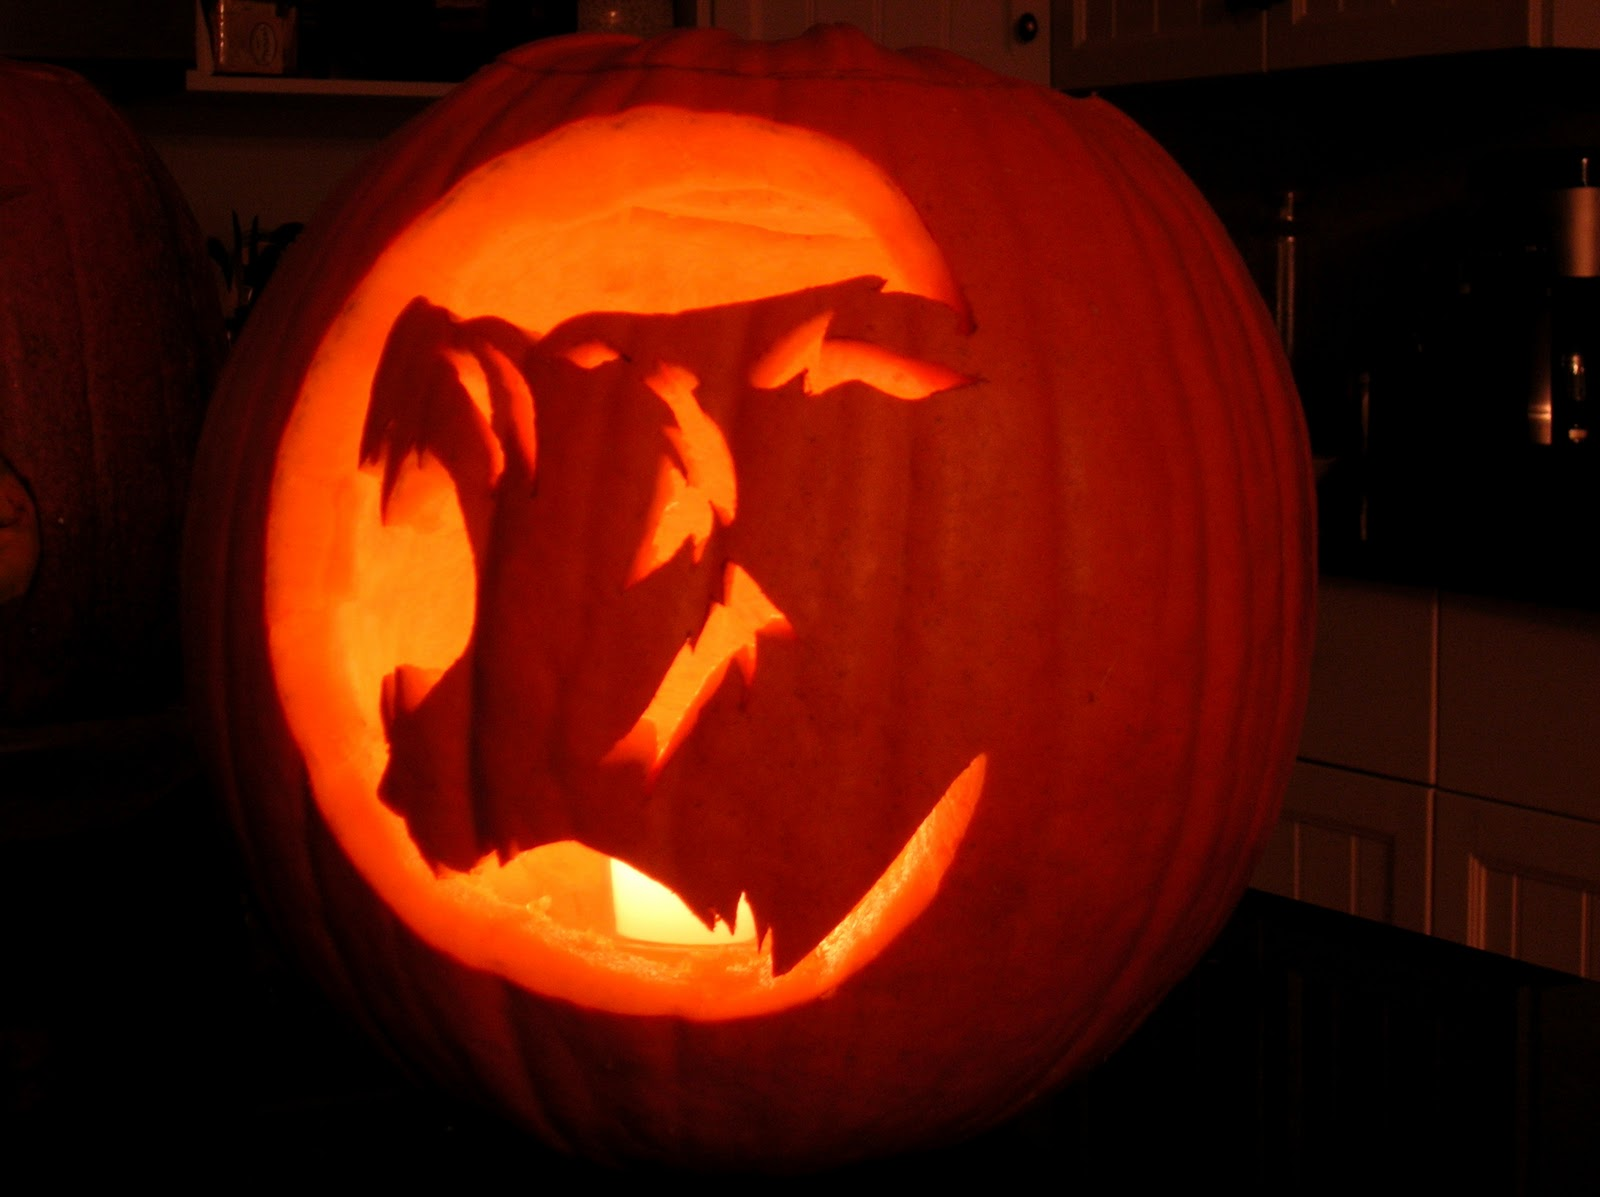 Wolves pumpkin carving pictures to pin on pinterest